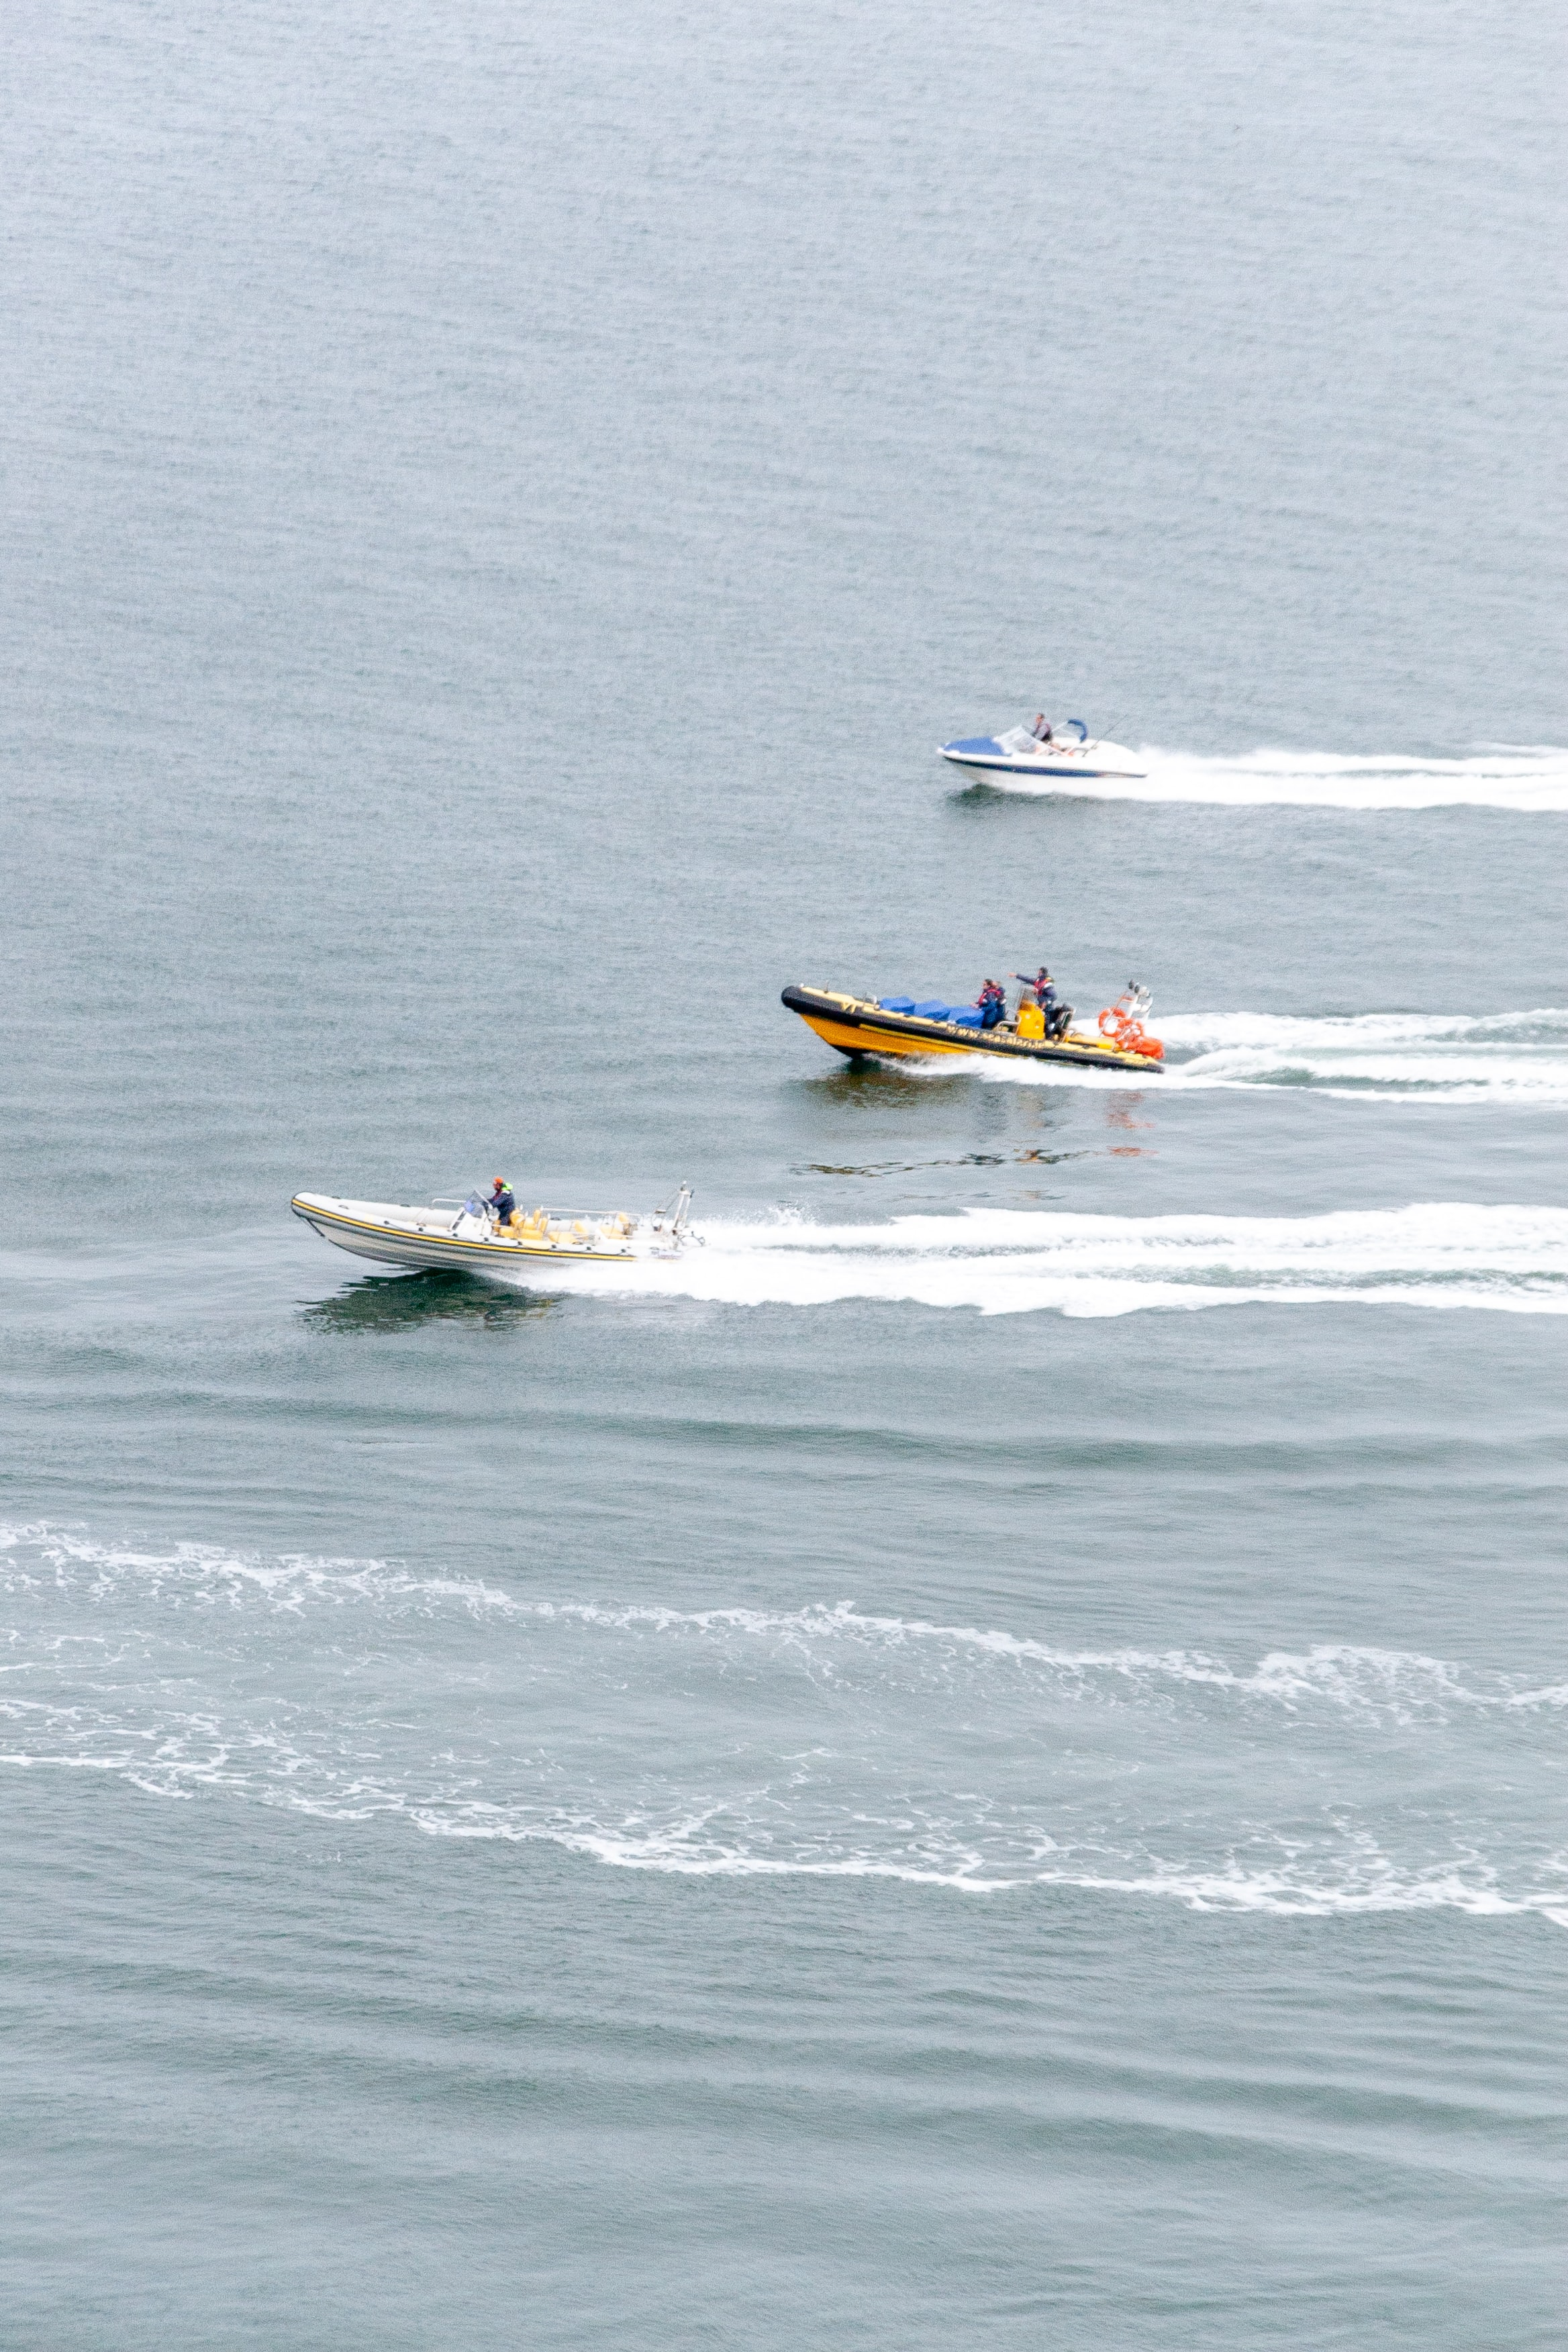 Three Marine Boats racing out on the waters